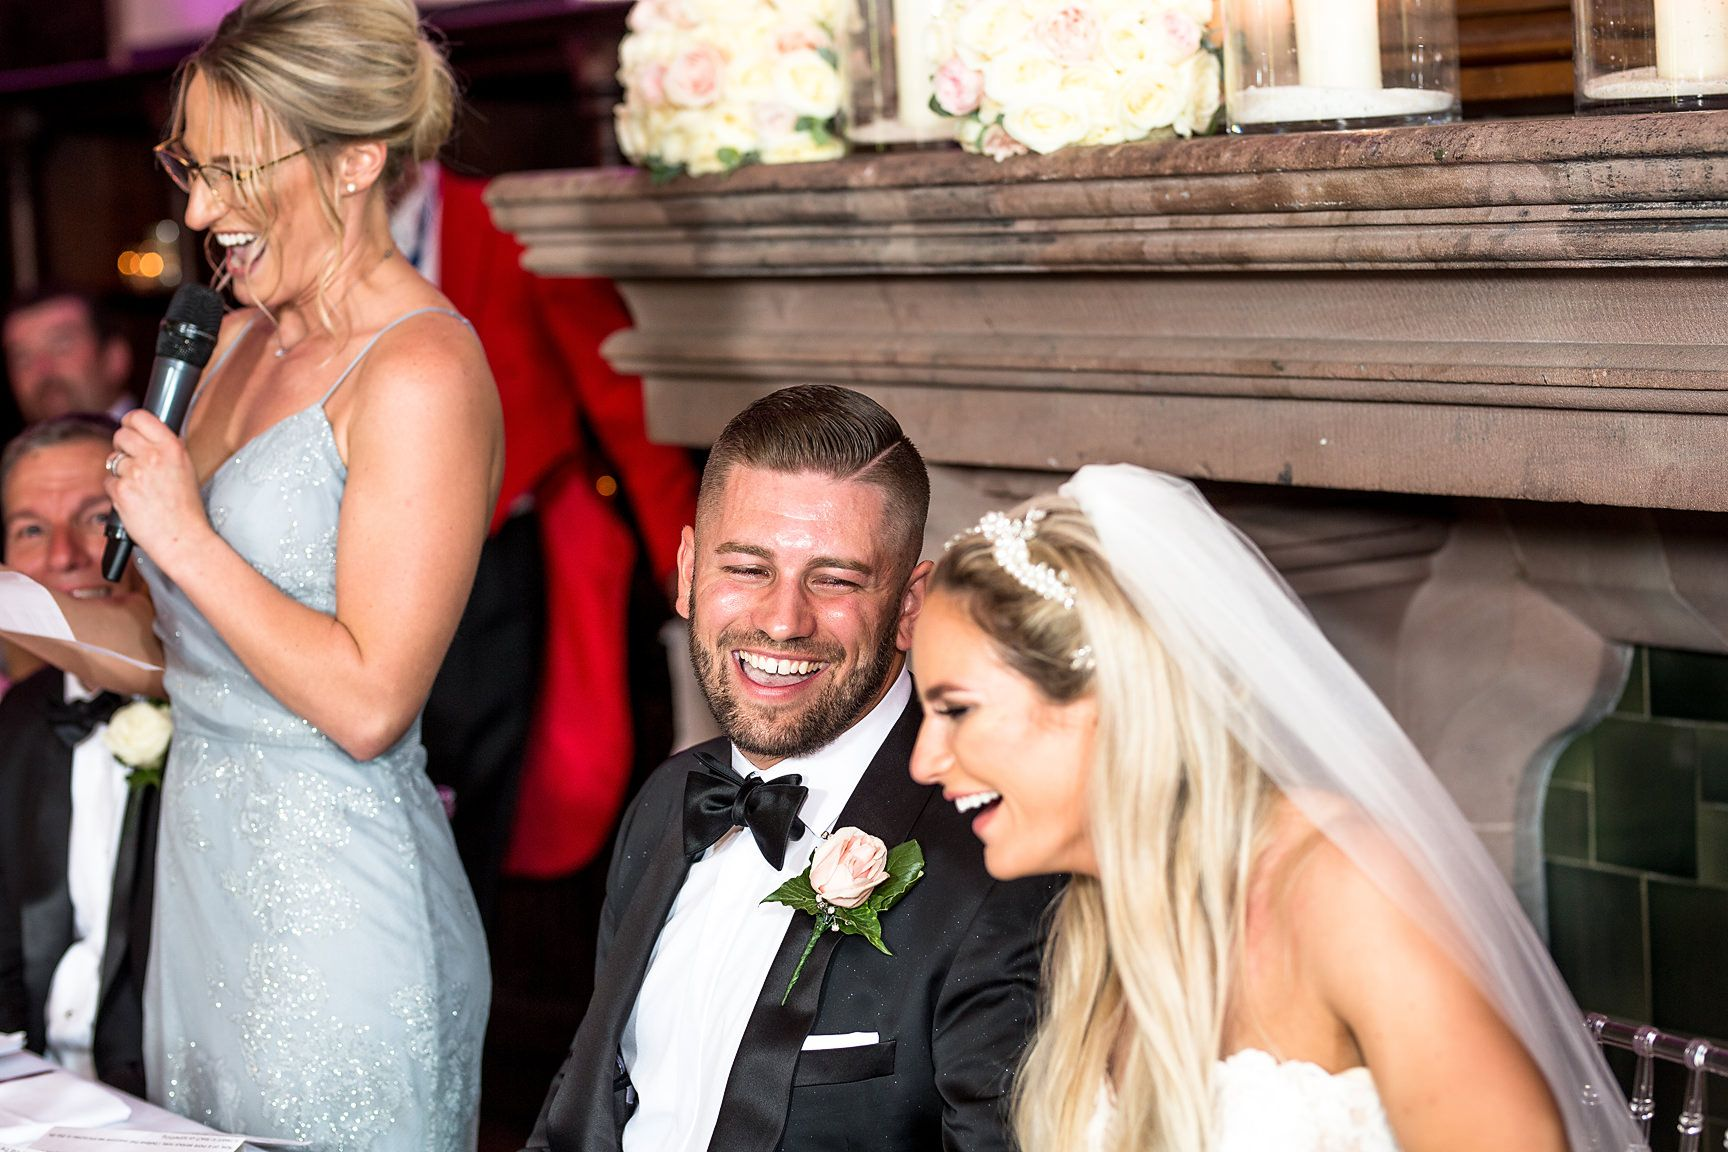 Peckforton castle wedding photography of groom smiling at bride during speeches